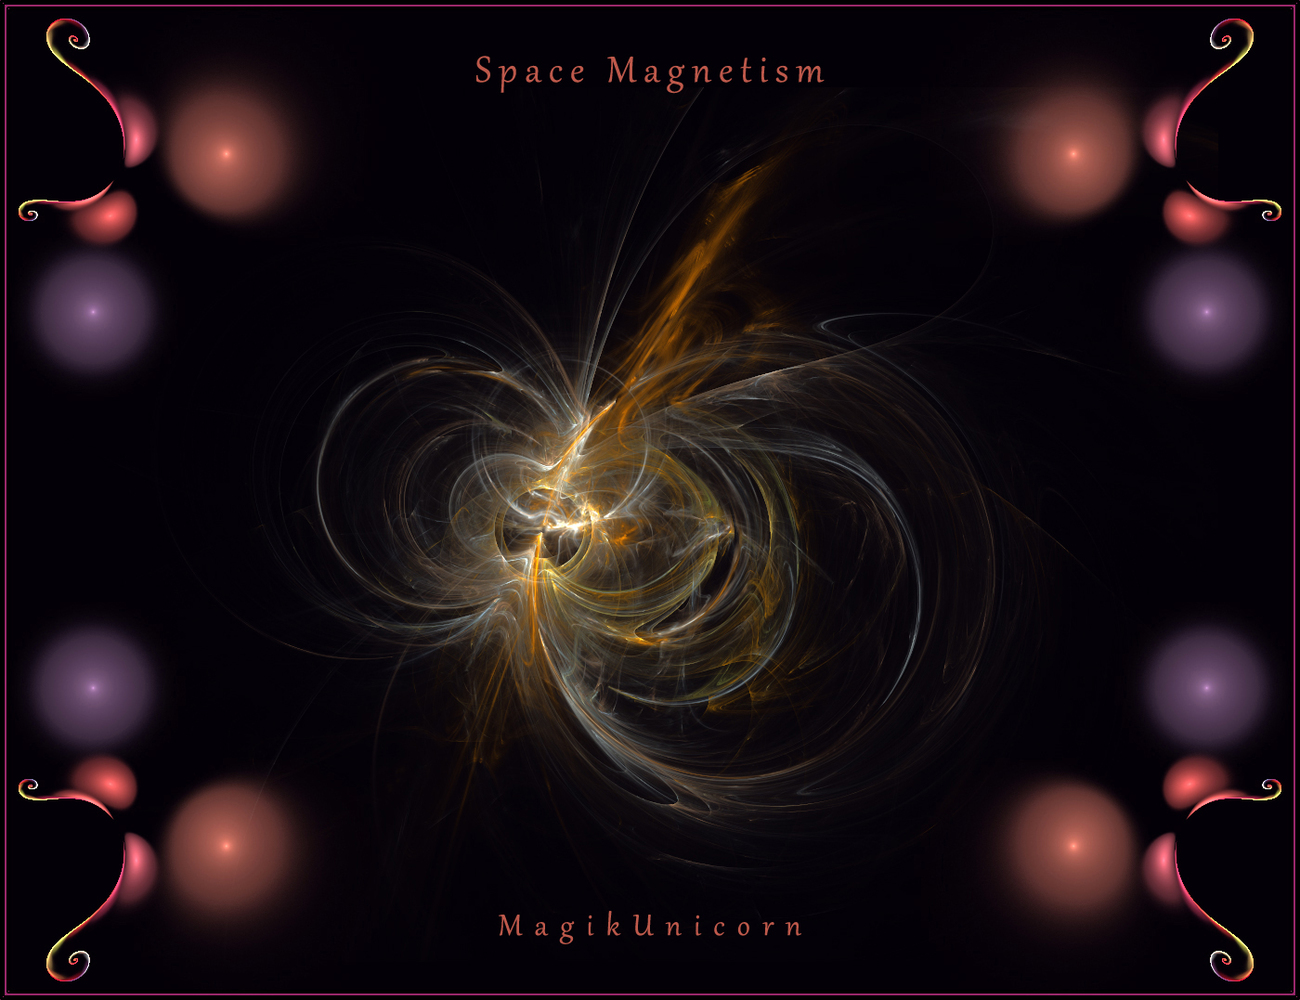 Space Magnetism by MagikUnicorn